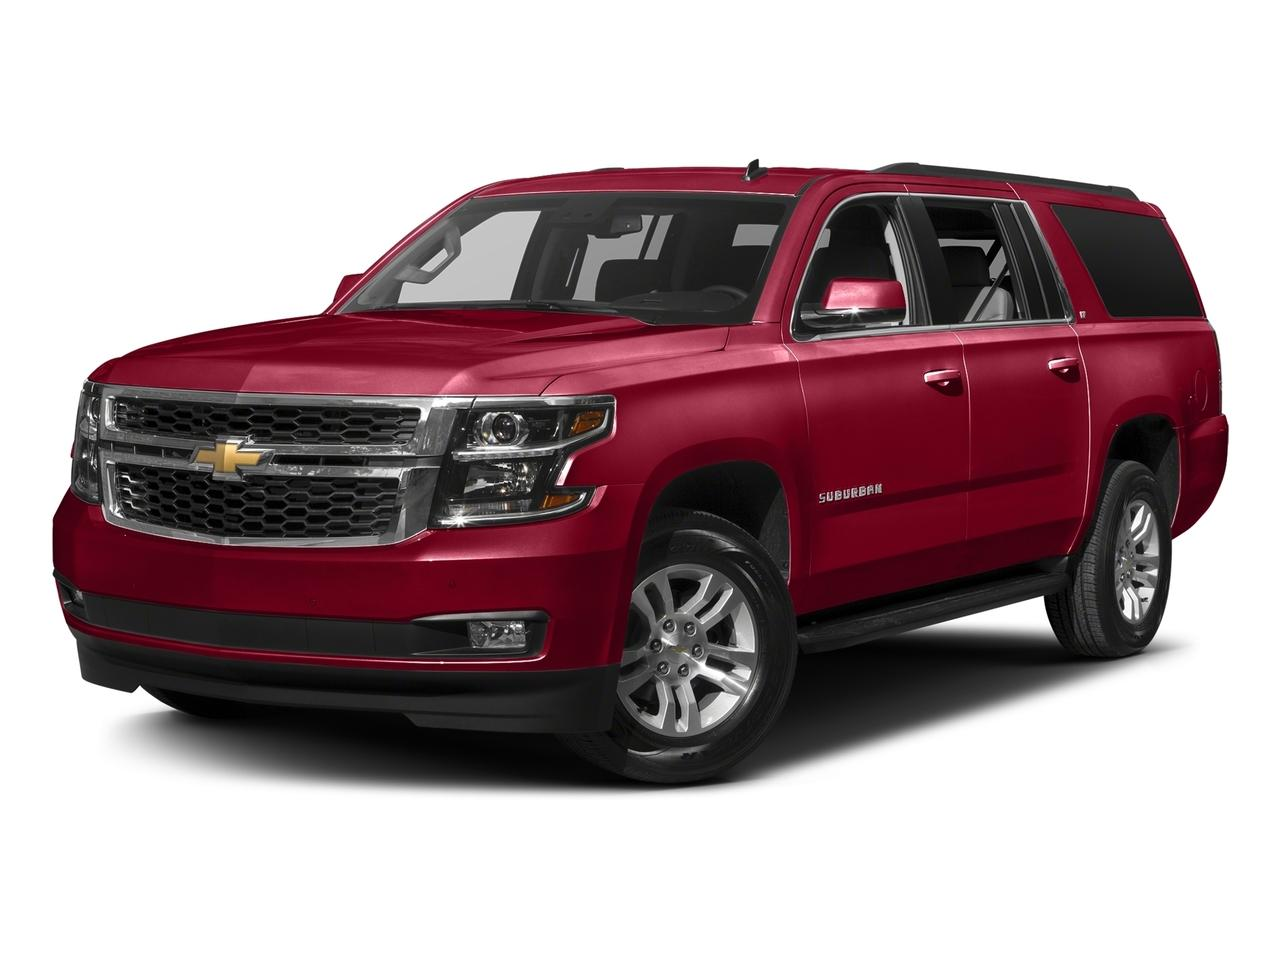 2017 Chevrolet Suburban Vehicle Photo in Owensboro, KY 42303